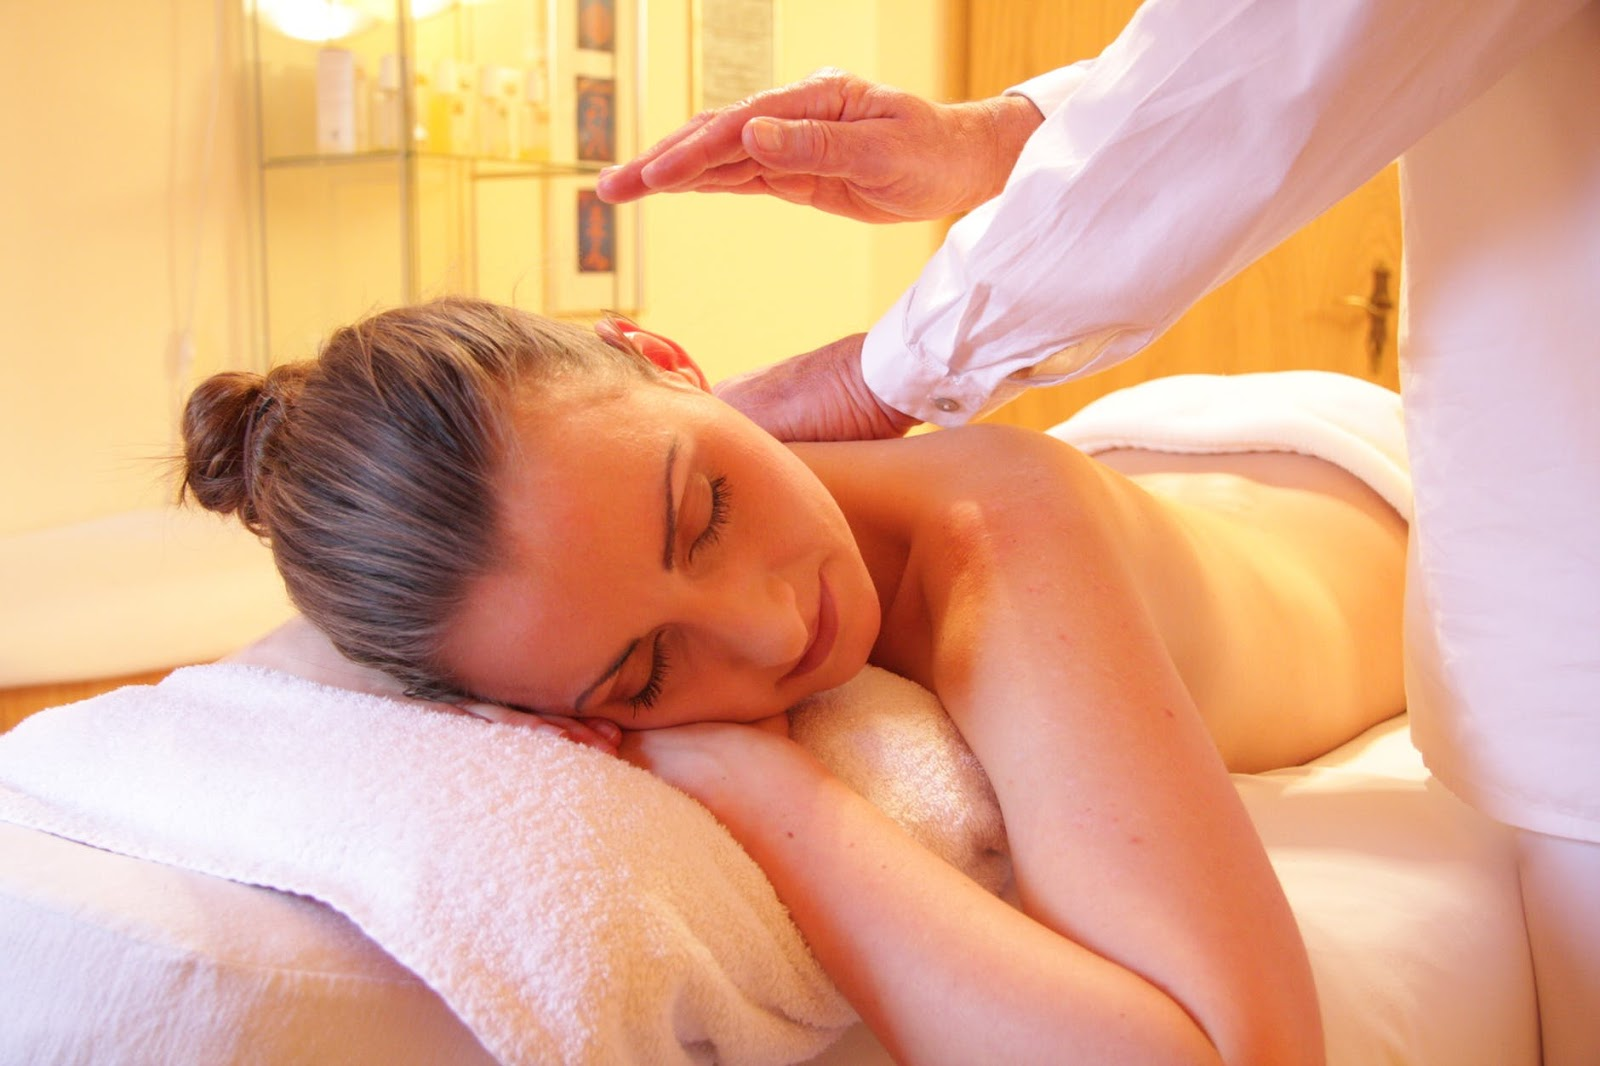 A woman gets a massage at one of a number of spas located in Grove City, Ohio.